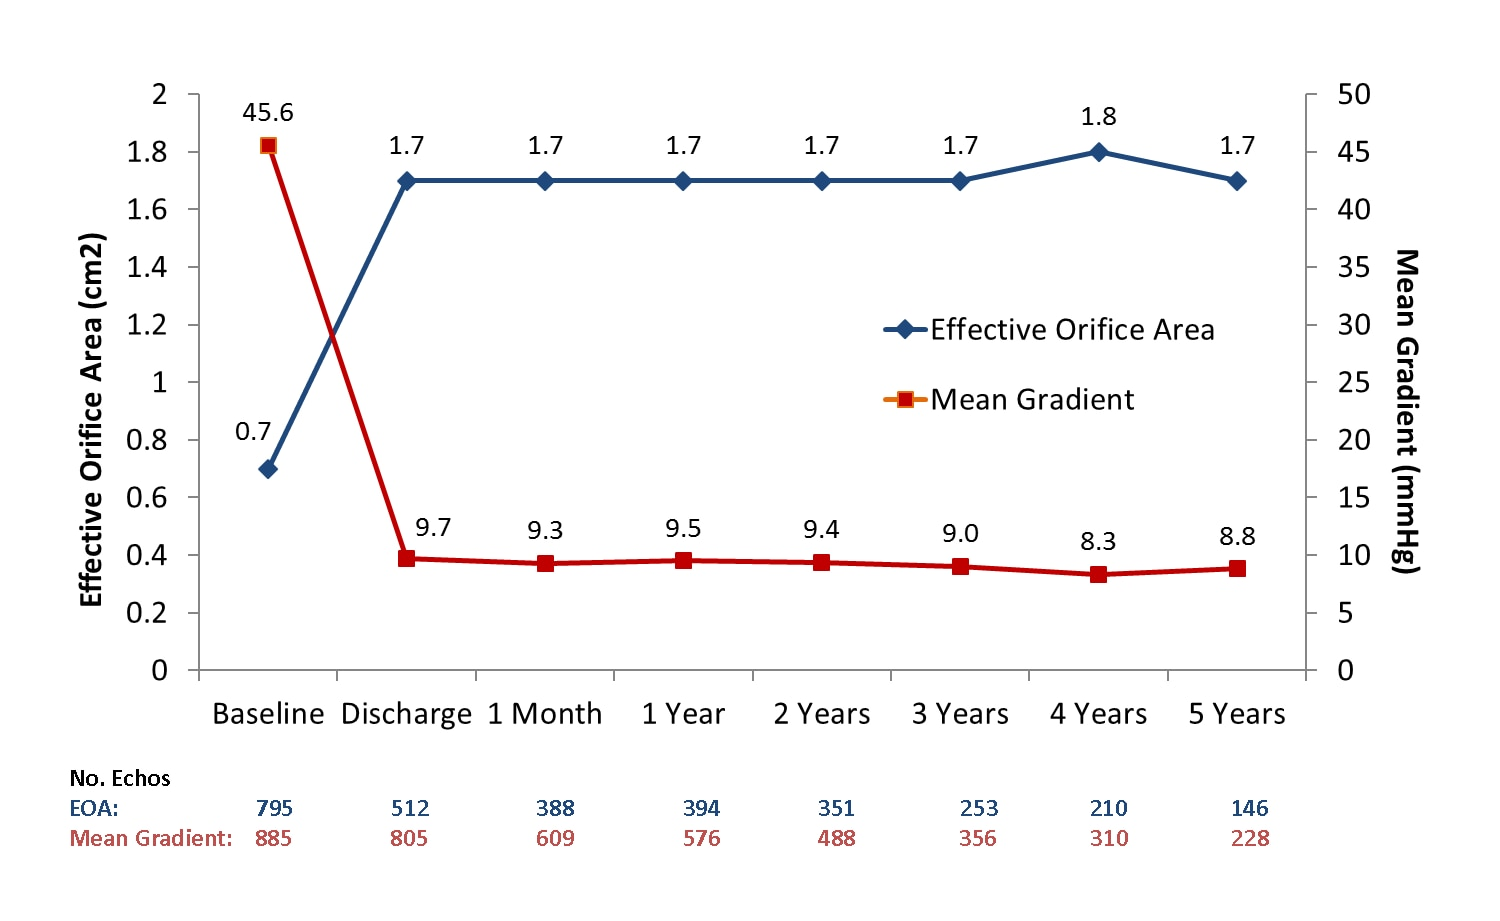 Graph showing effective orifice area and mean gradient over 5 years.